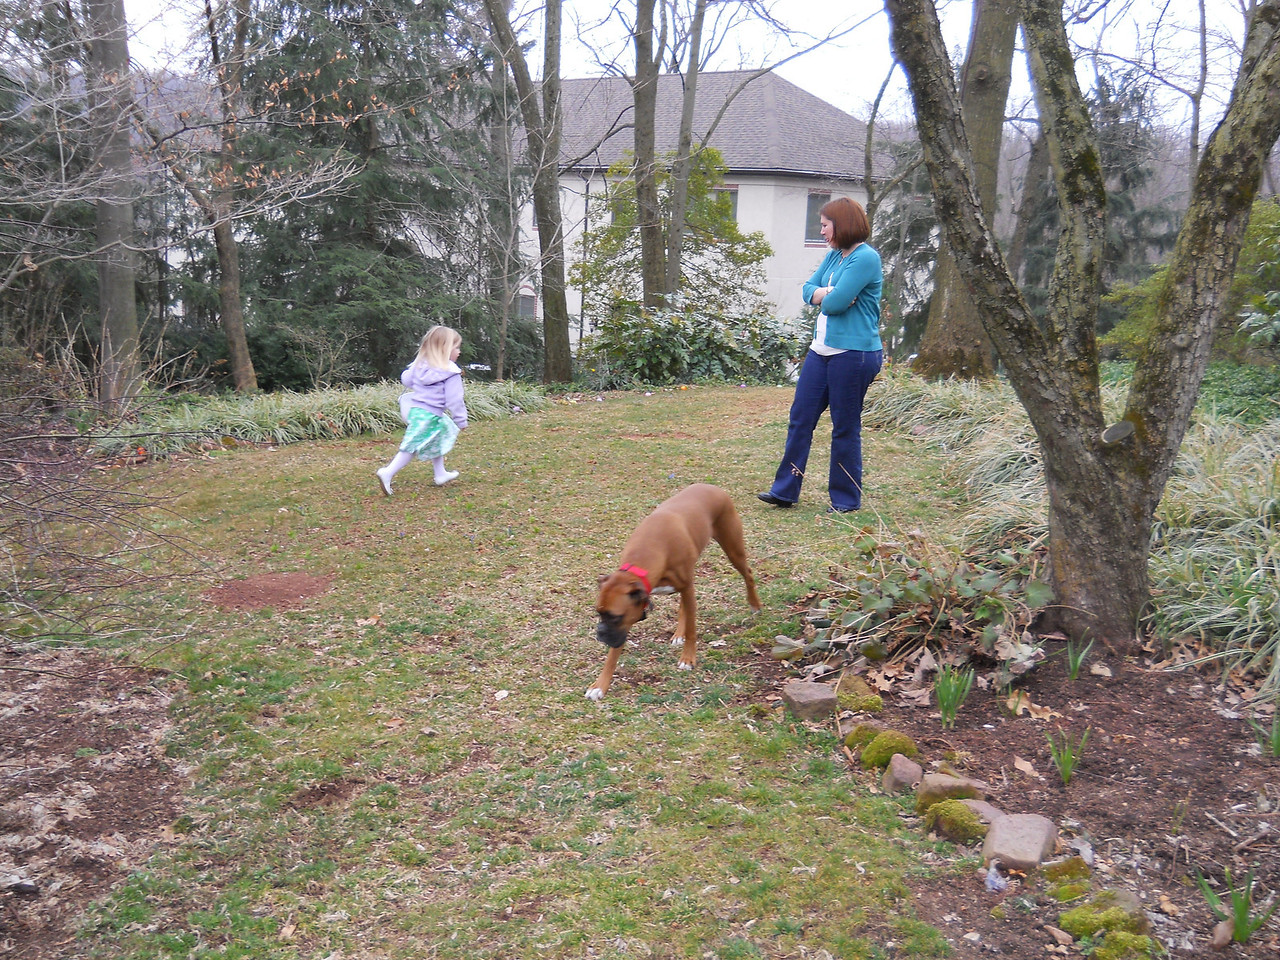 Even Daisy got into the act.  A few days later, she found an egg the girls missed and got herself some candy.